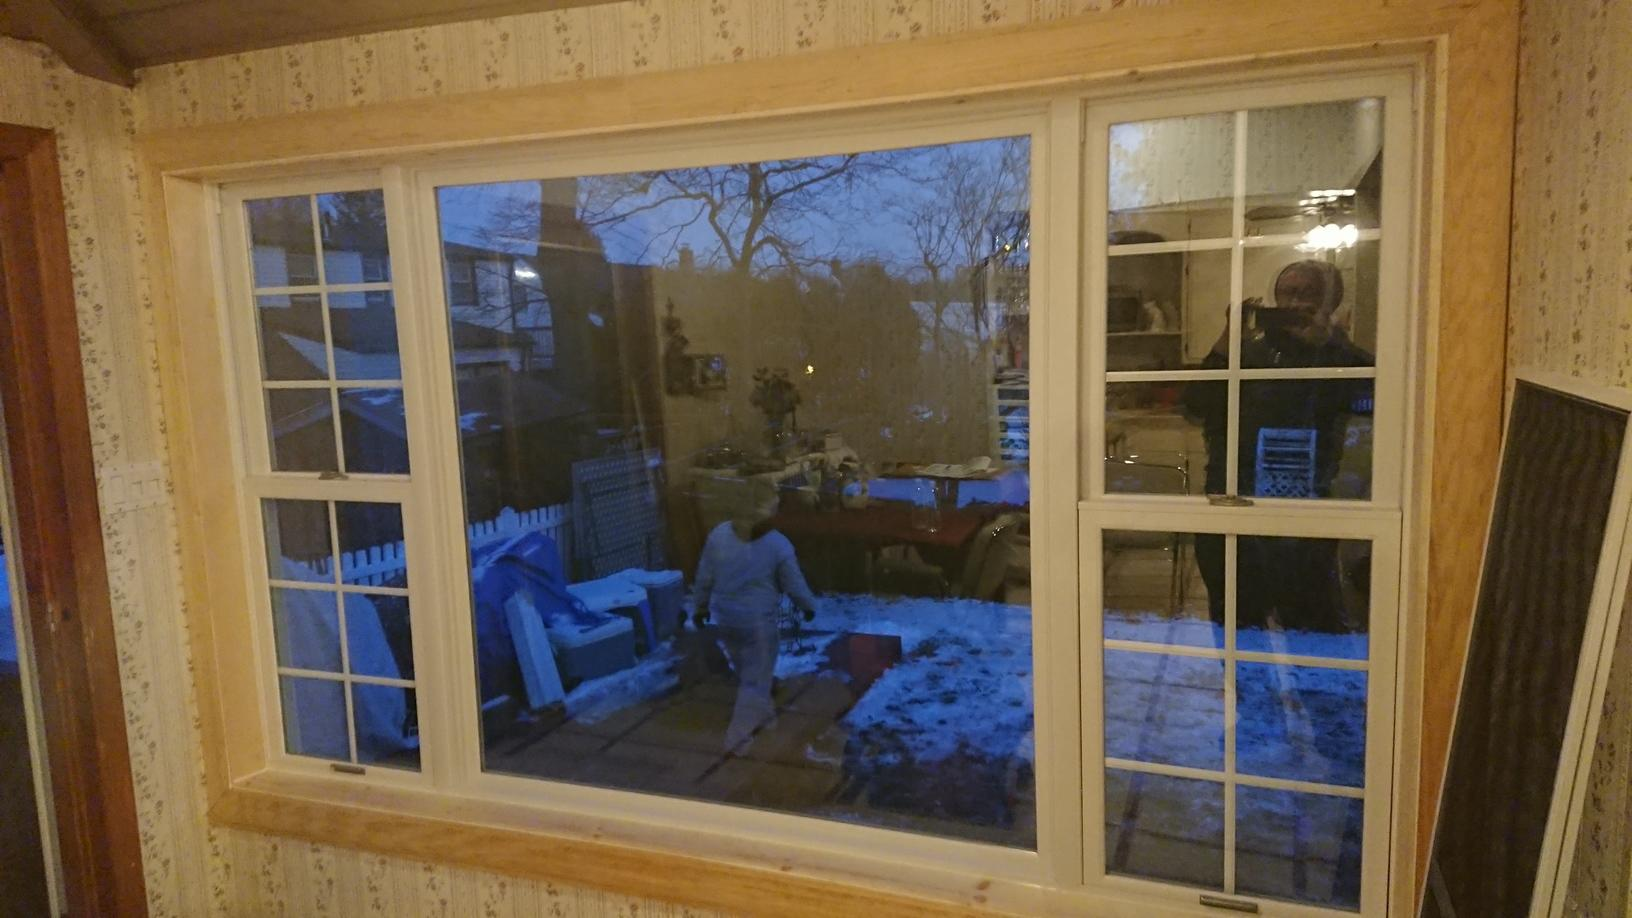 Infinity Picture and Double Hung Windows Install in Maywood, NJ